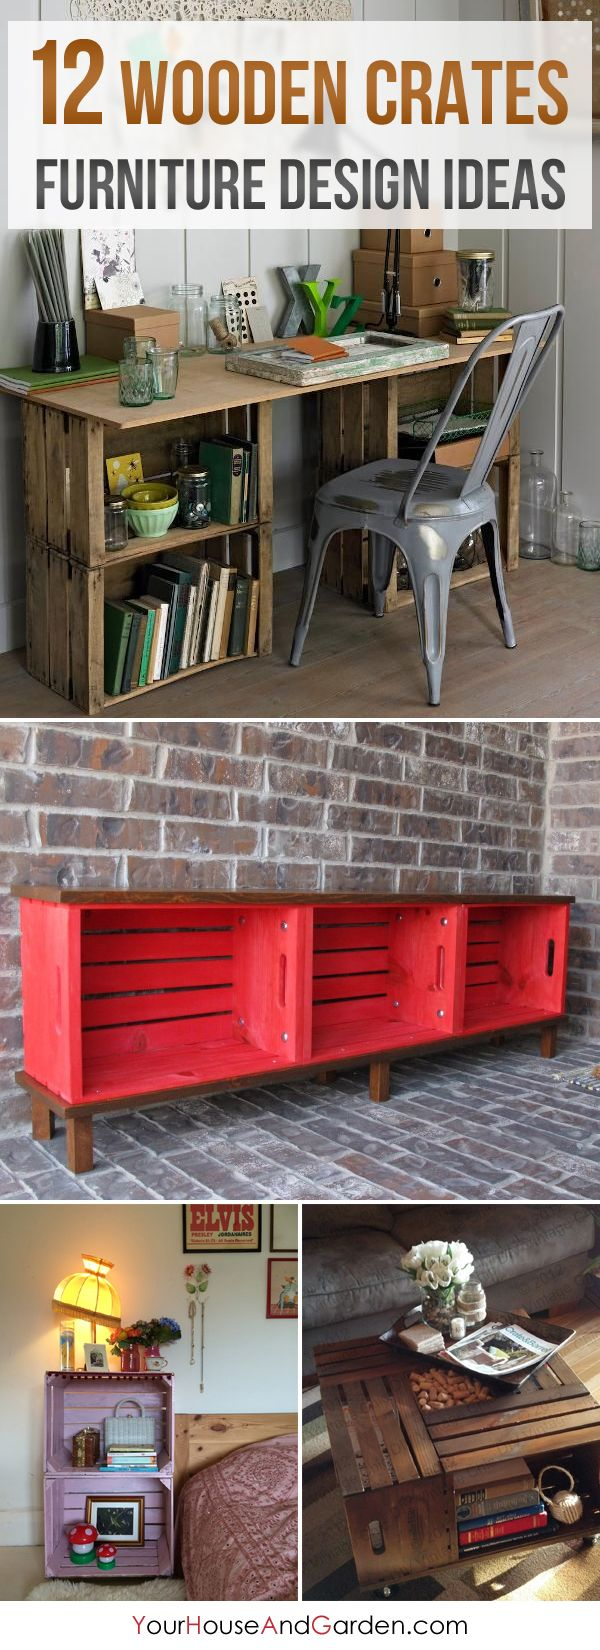 Use Old Wooden Crates As Furniture